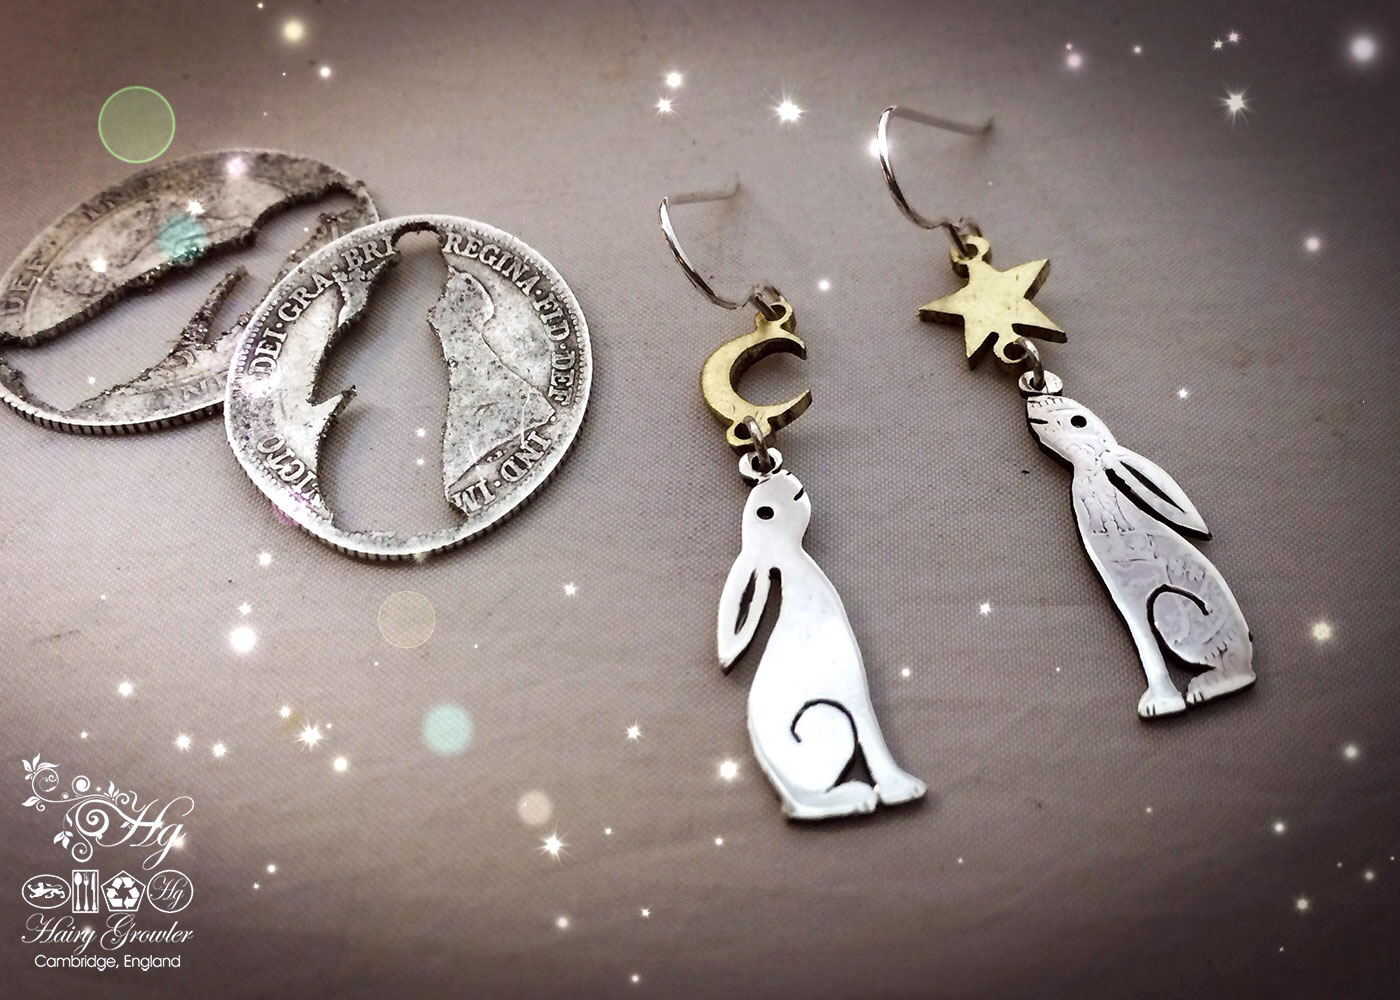 handmade and recycled silver Georgian shilling hare earrings made in Cambridge